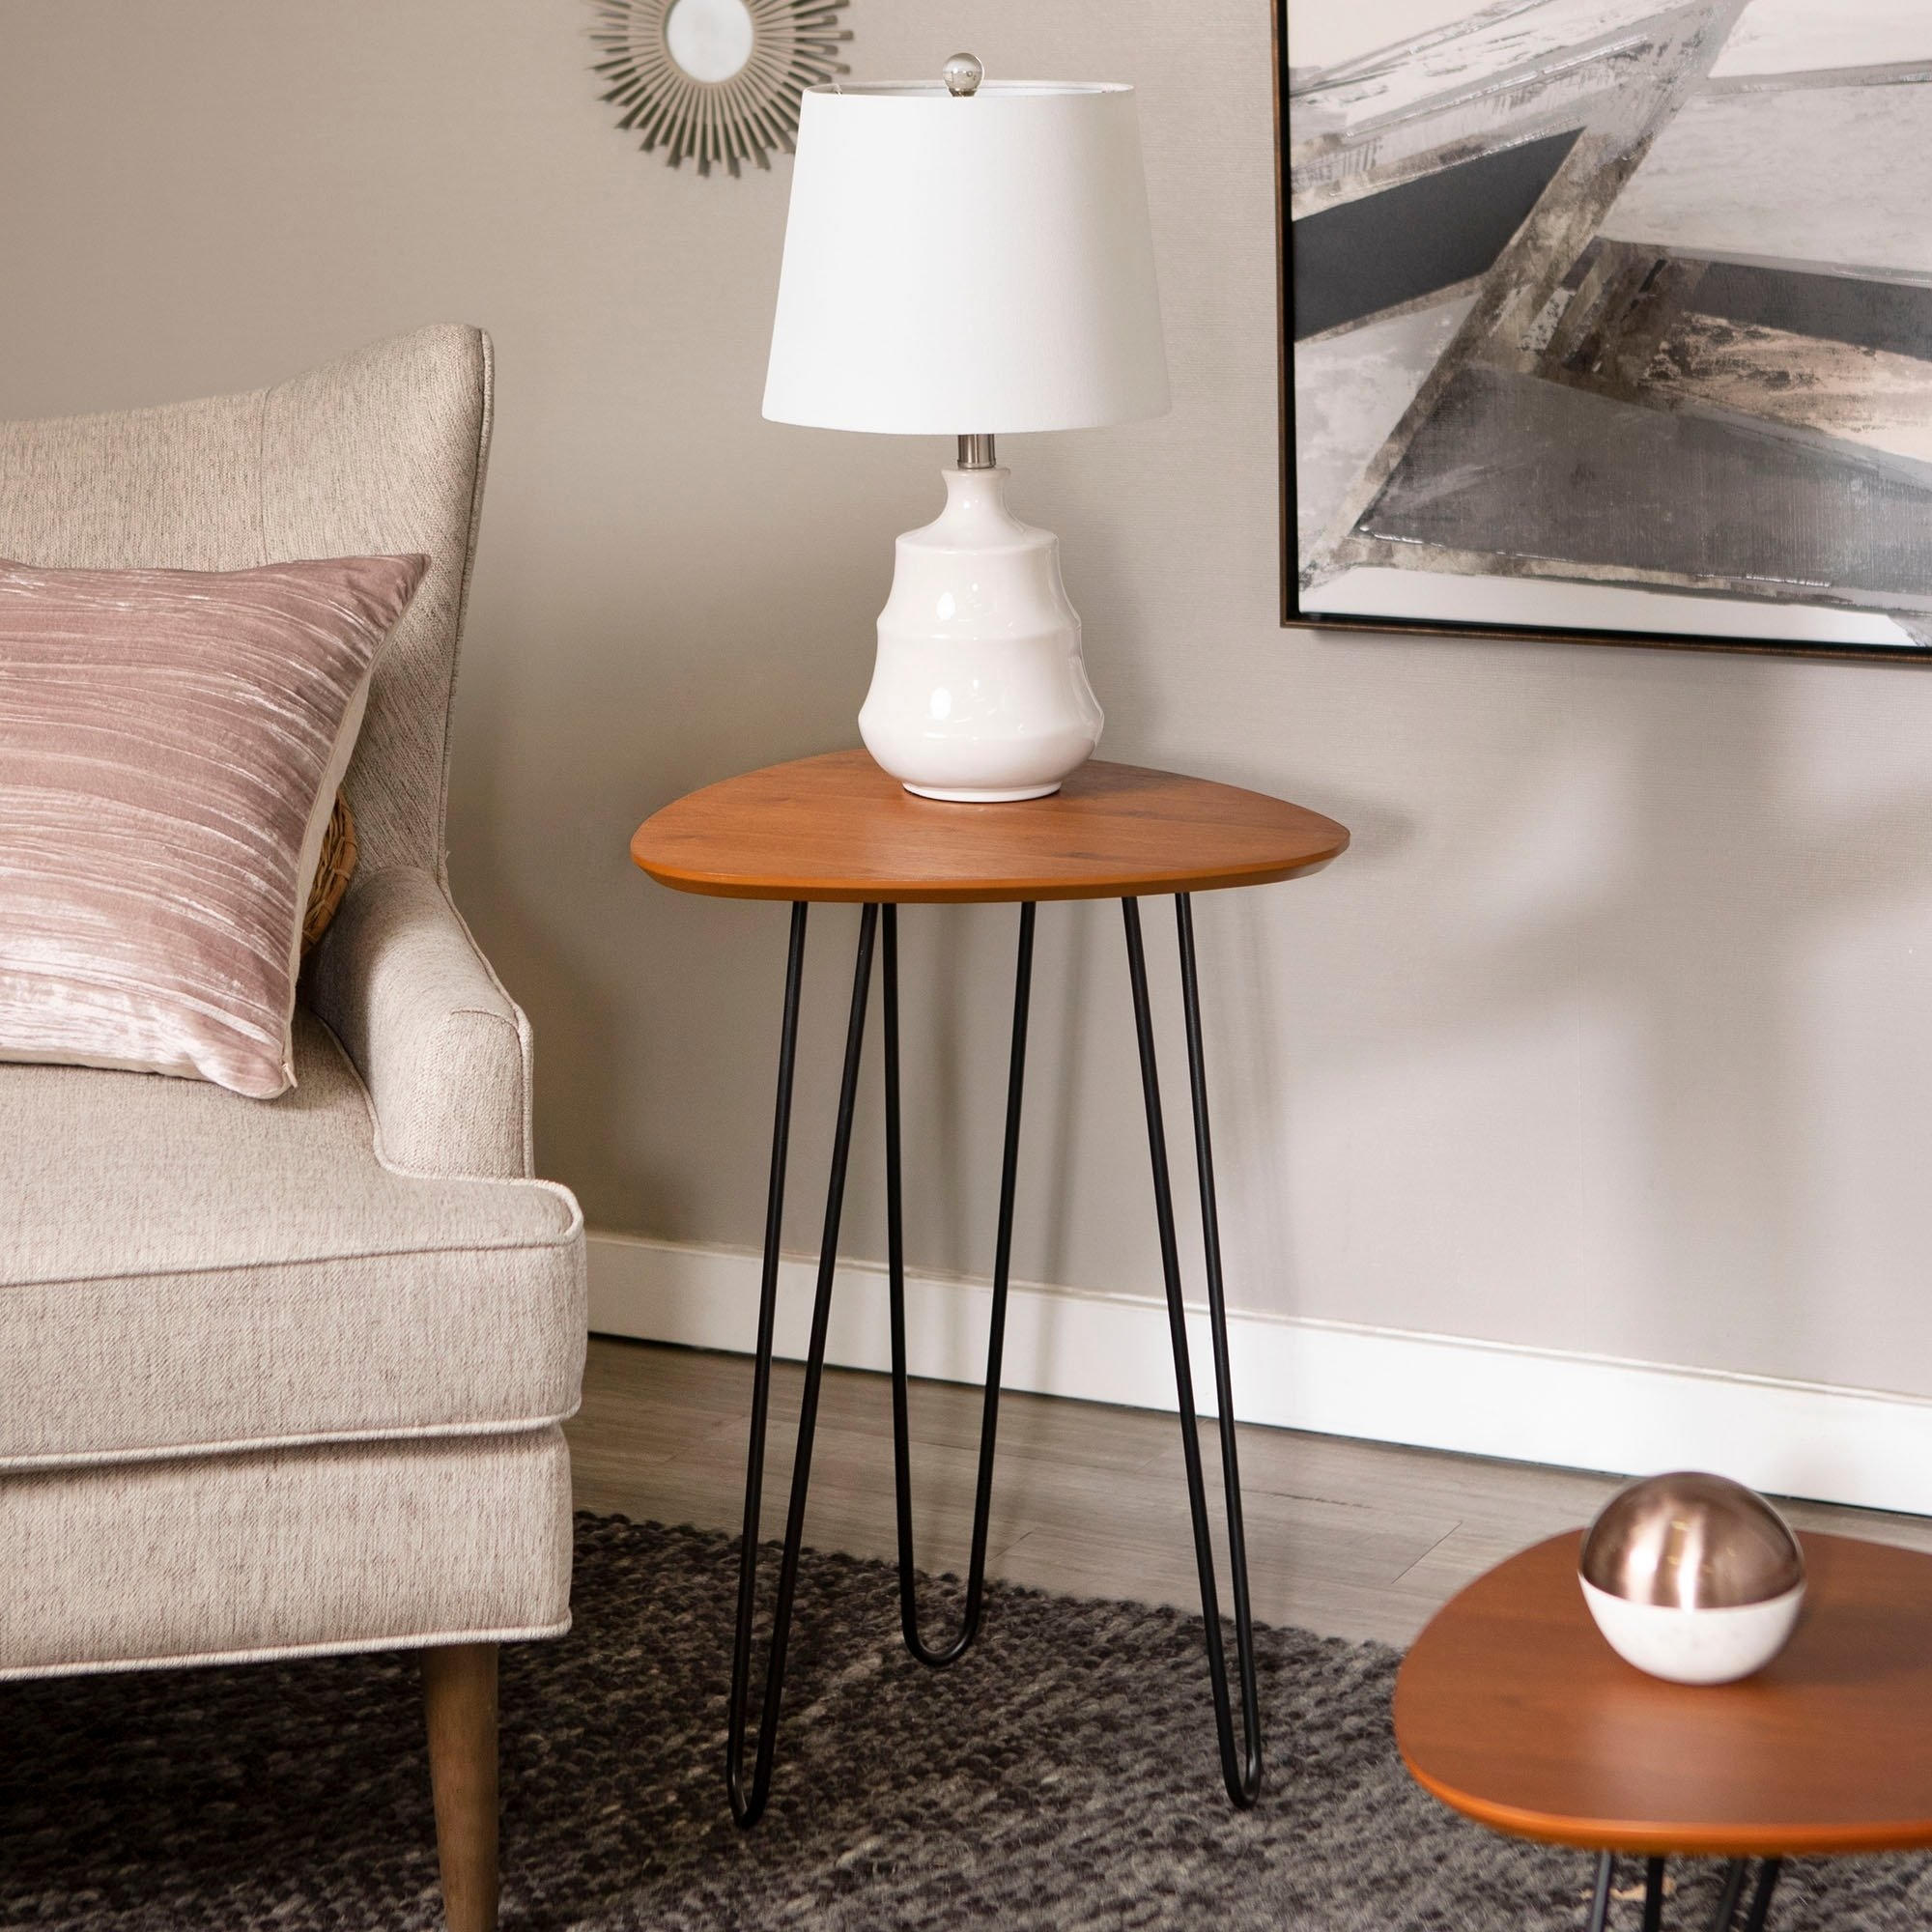 guitar side table walnut free room essentials metal patio accent west elm reclaimed wood rechargeable battery powered lamps keter beer cooler clear lucite desk standard end height